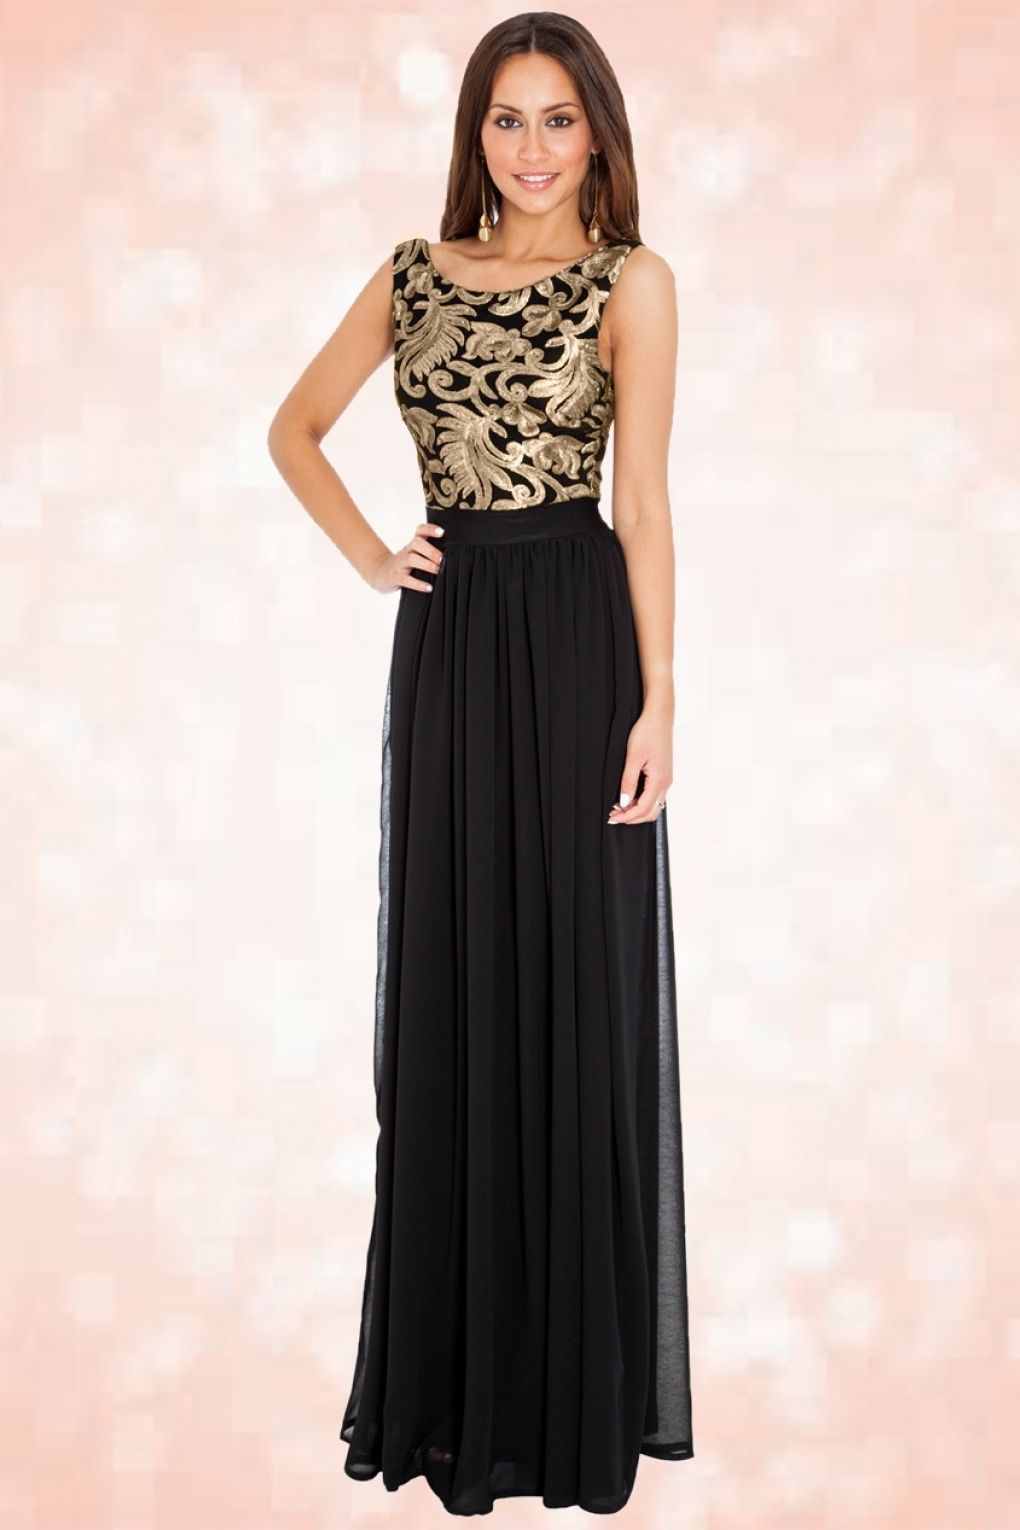 S scarlet gold maxi dress in black vintage chic kleding